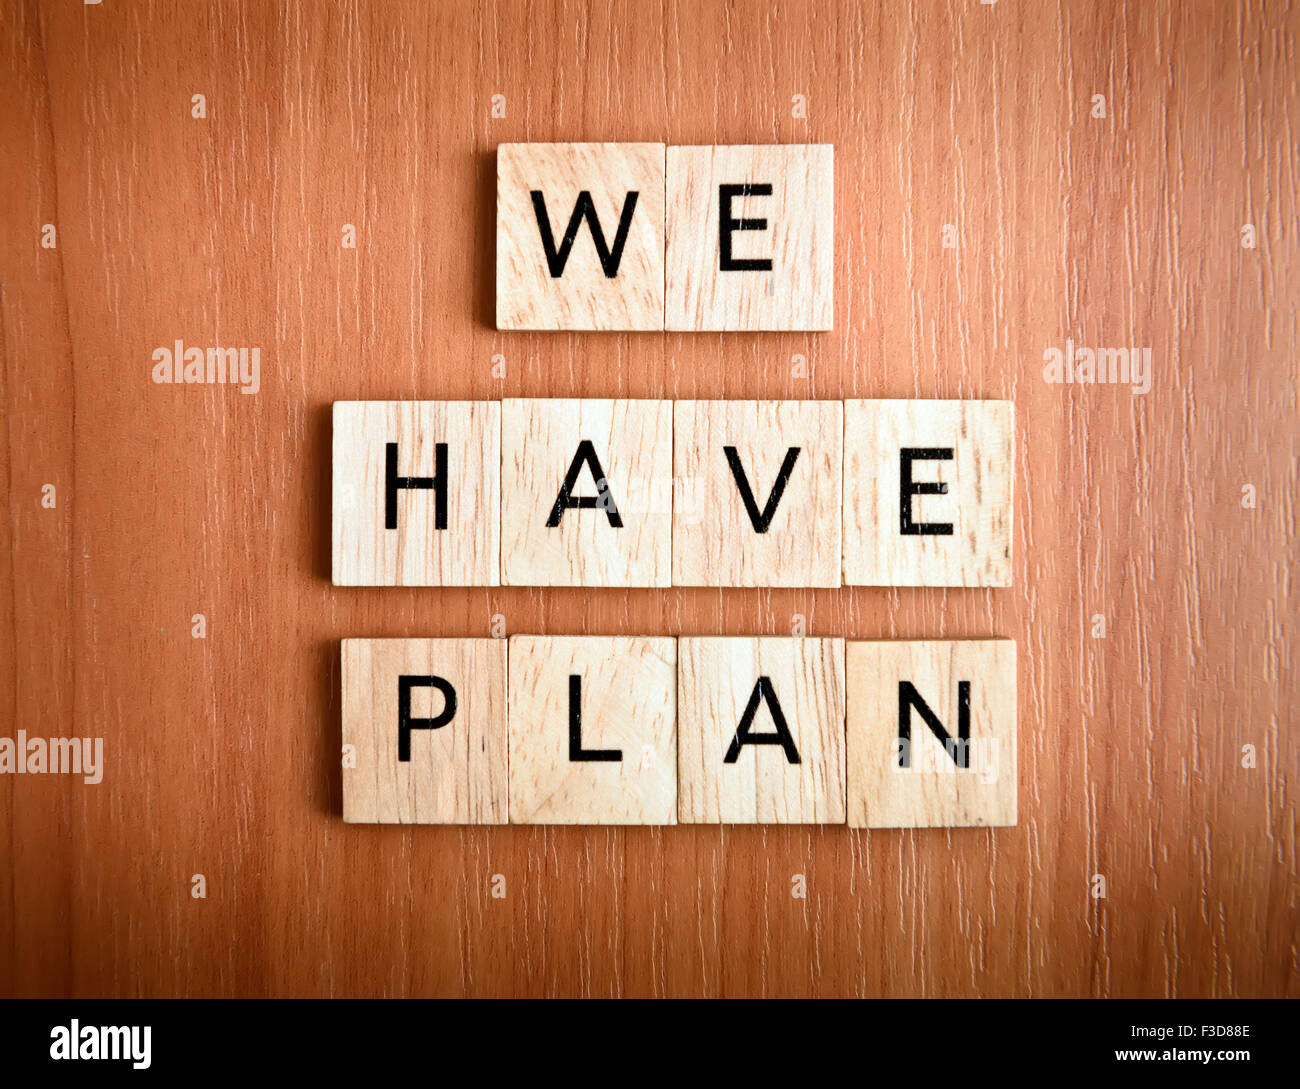 We have Plan text on tiles over wooden background - Stock Image